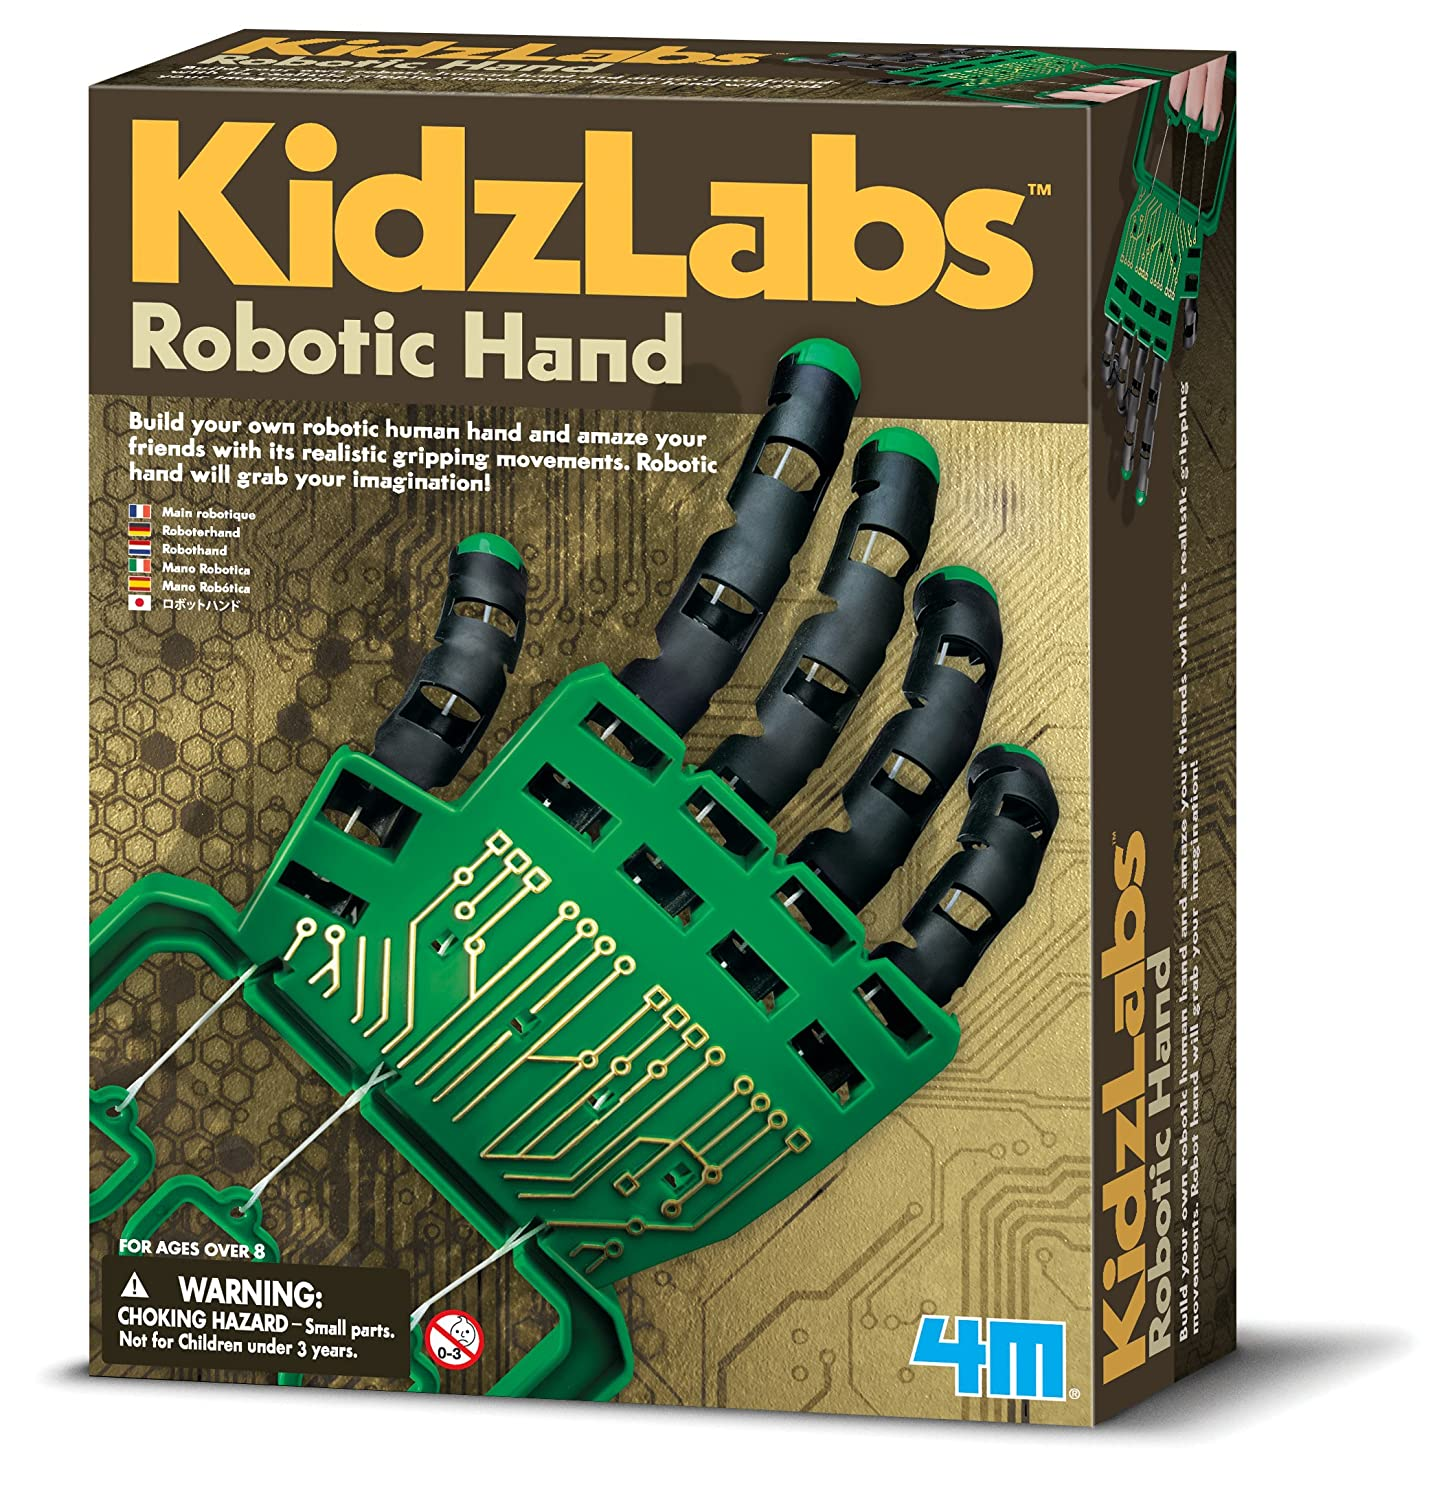 Ultimate Guide: Cool Gadget Toys & Science Gifts for Kids